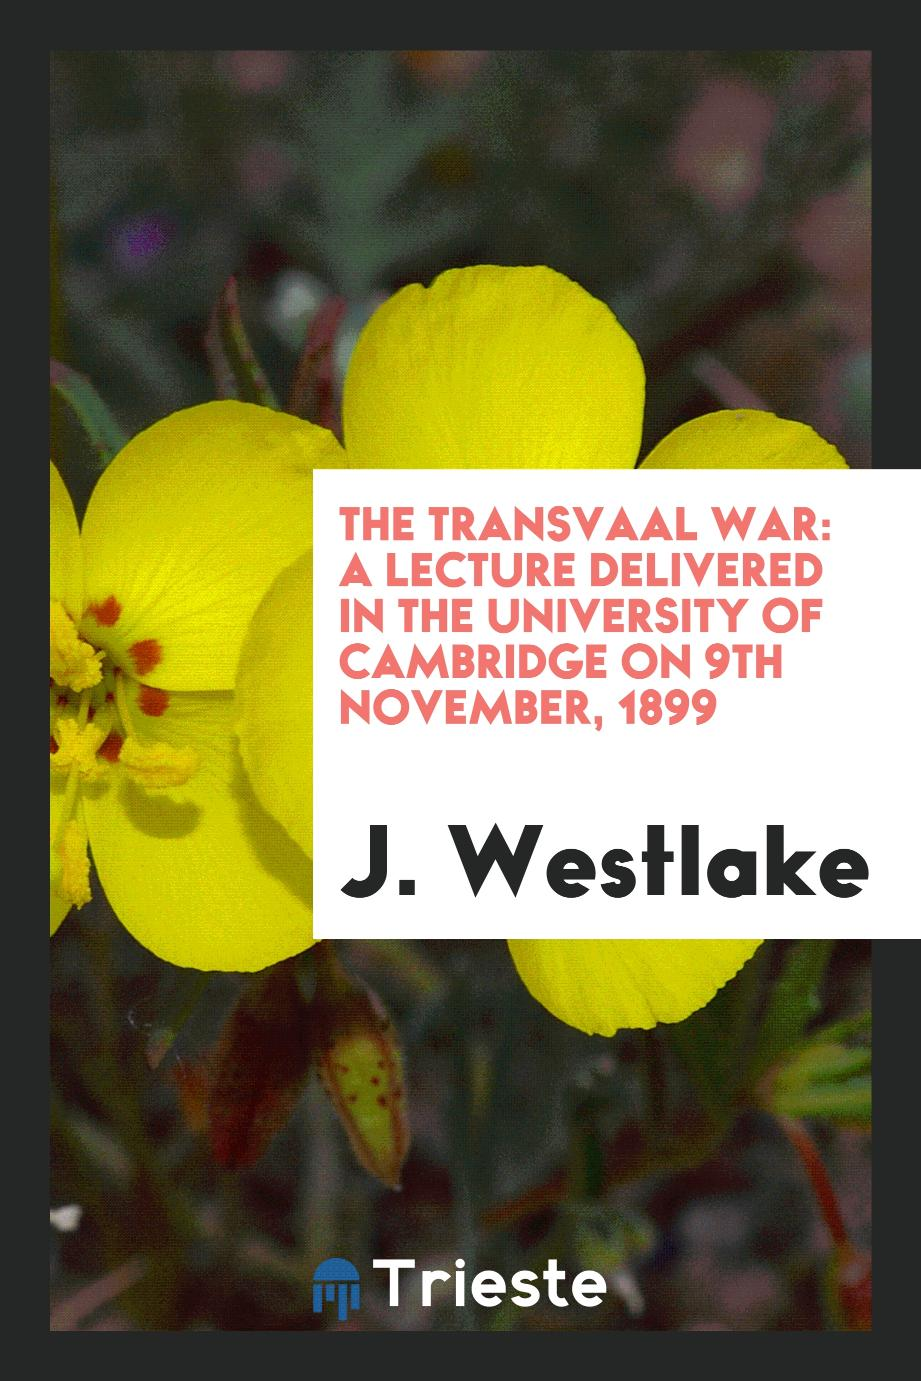 The Transvaal war: a lecture delivered in the University of Cambridge on 9th November, 1899